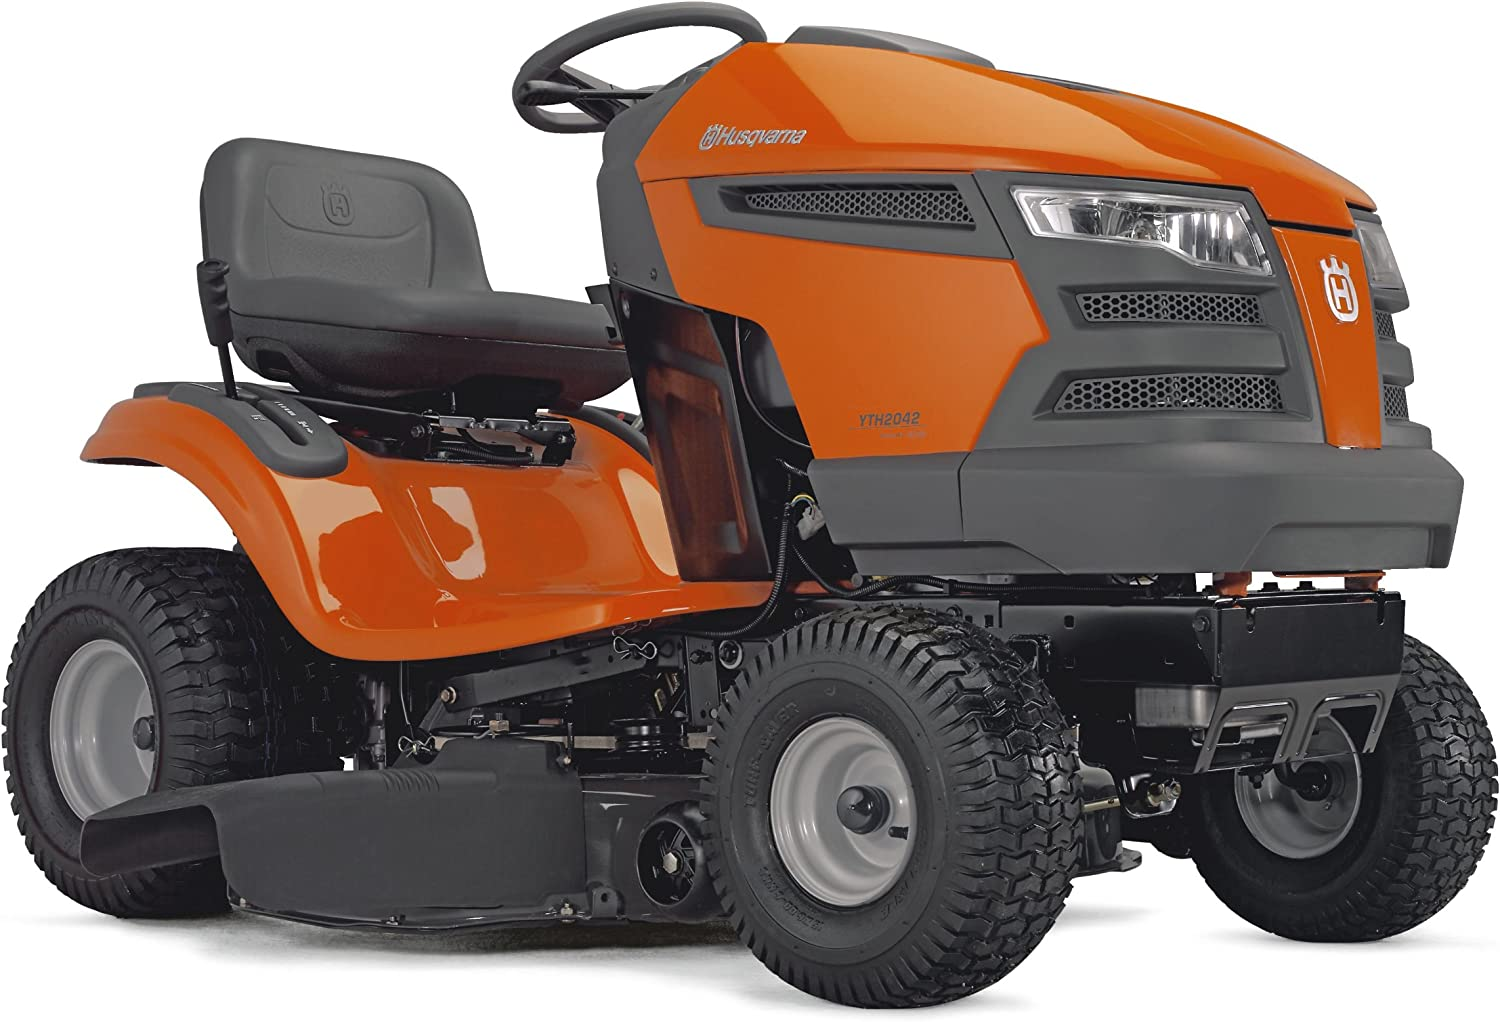 Amazon Com Husqvarna Yth2042 42 Inch 540cc 20 Hp Briggs Stratton Intek Lever Activated Hydrostatic Transmission Riding Lawn Tractor Riding Mowers Garden Outdoor